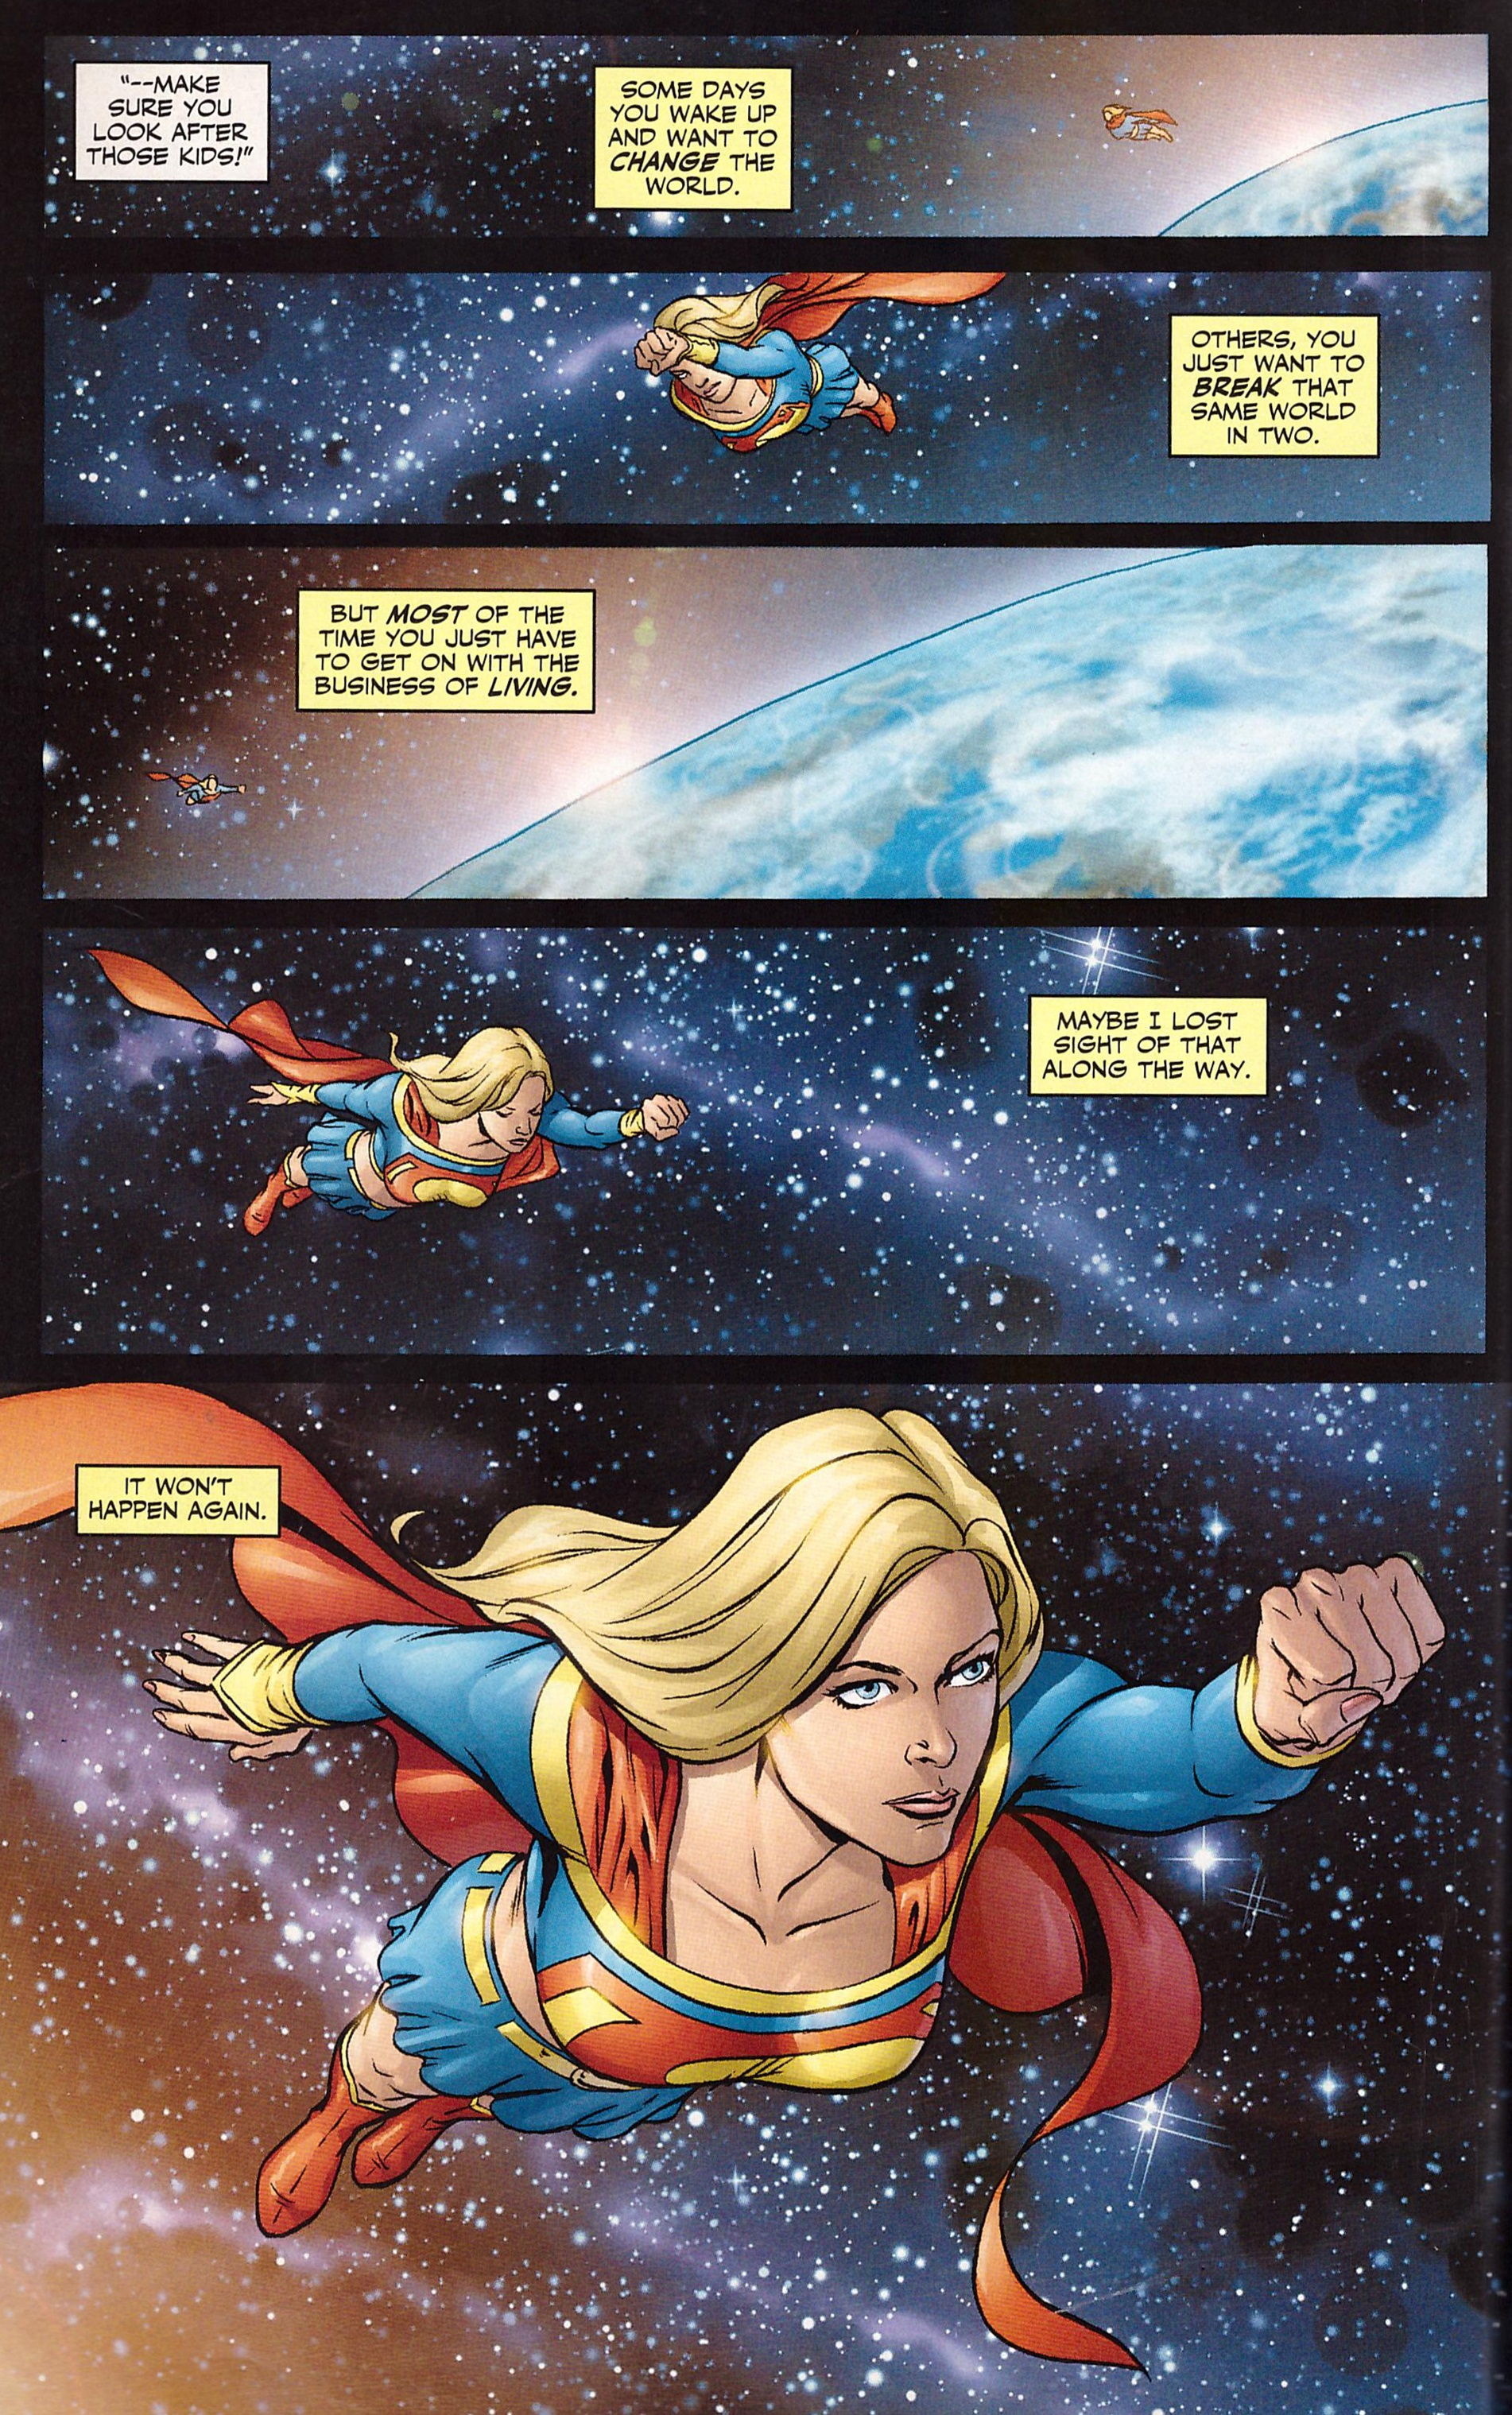 Supergirl Way of the World review